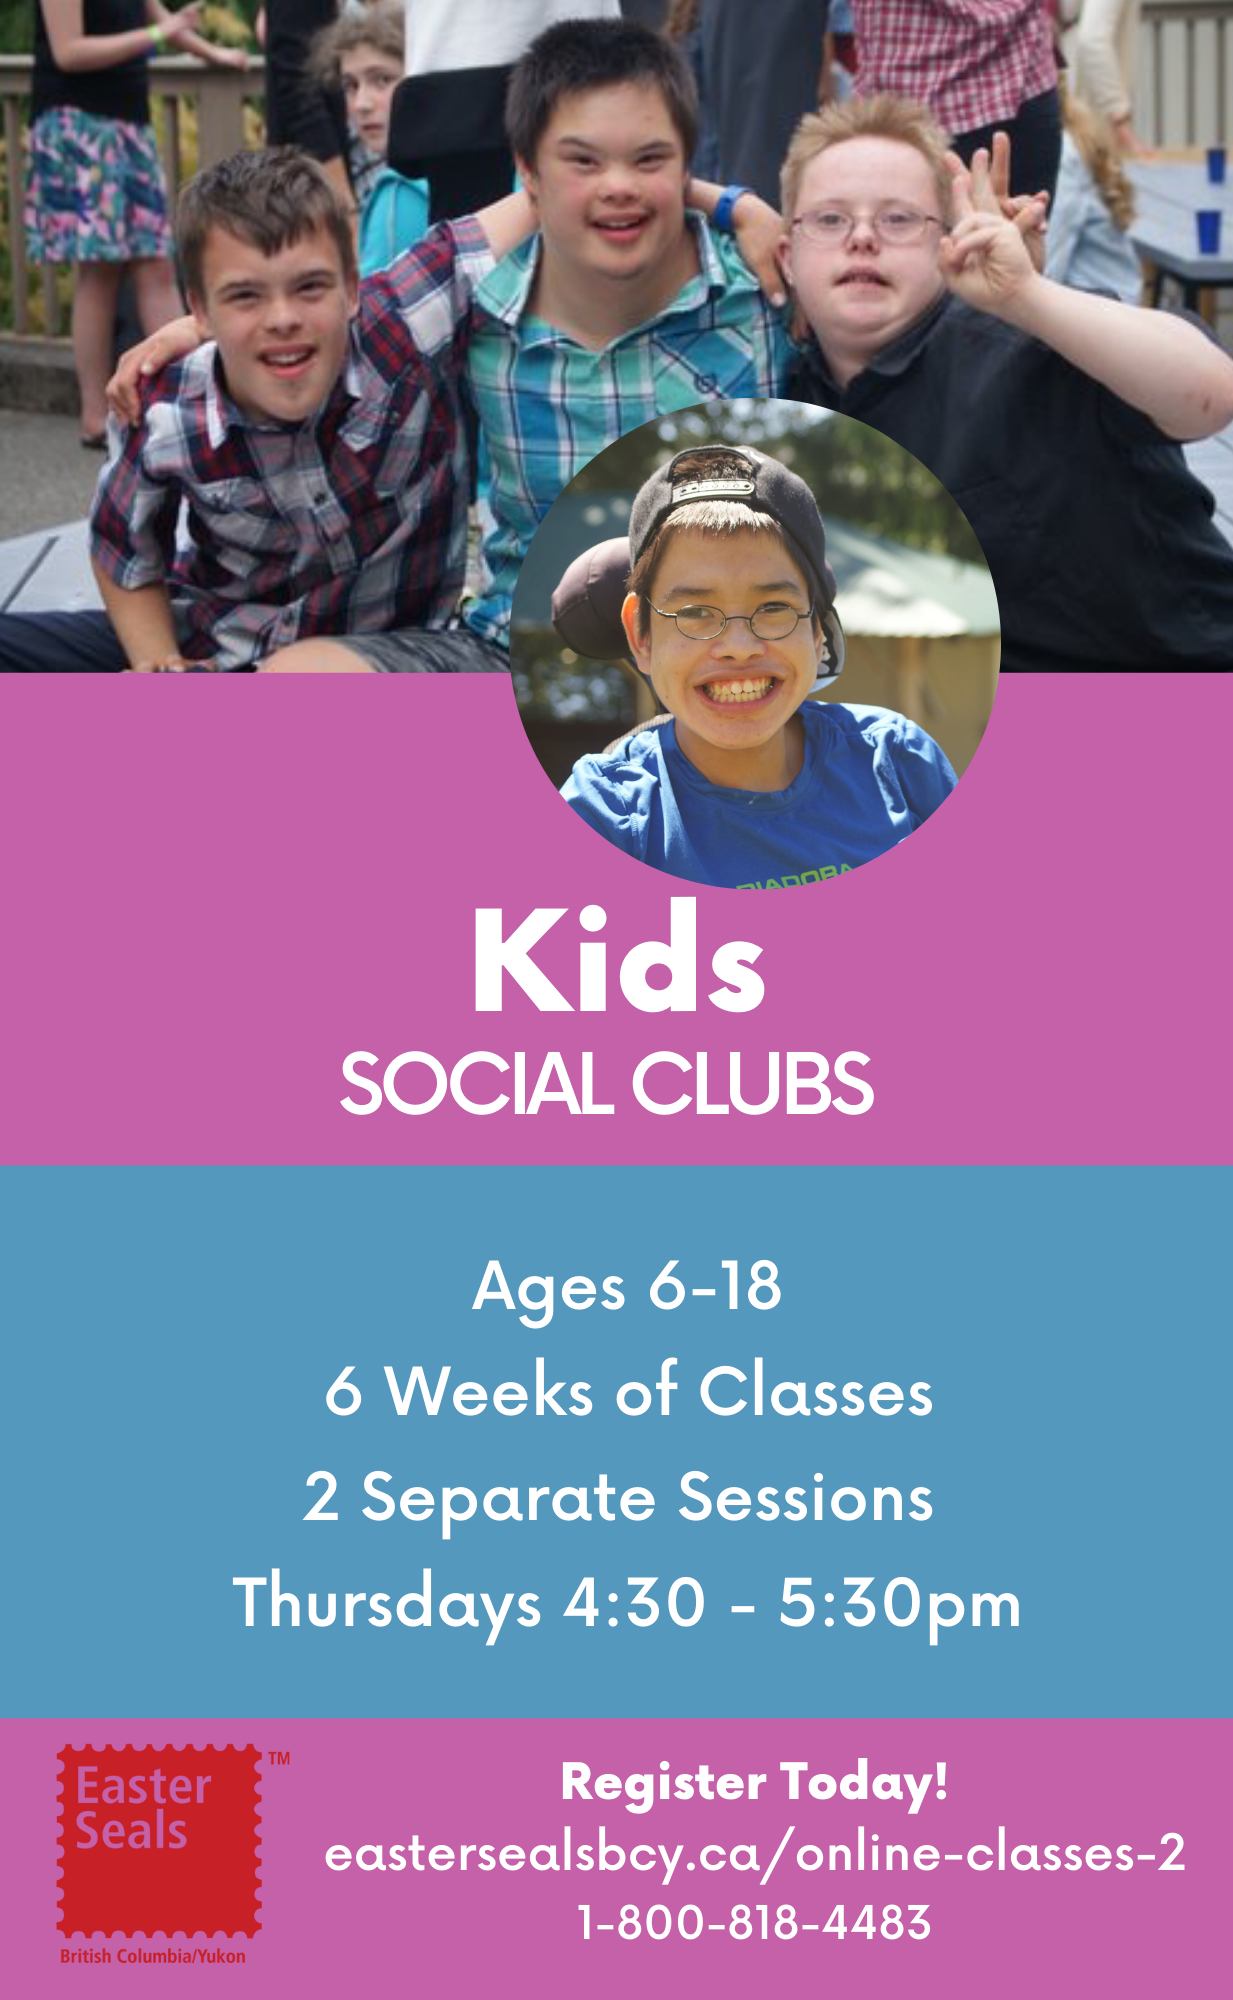 Kids Social Club for Ages 6-18